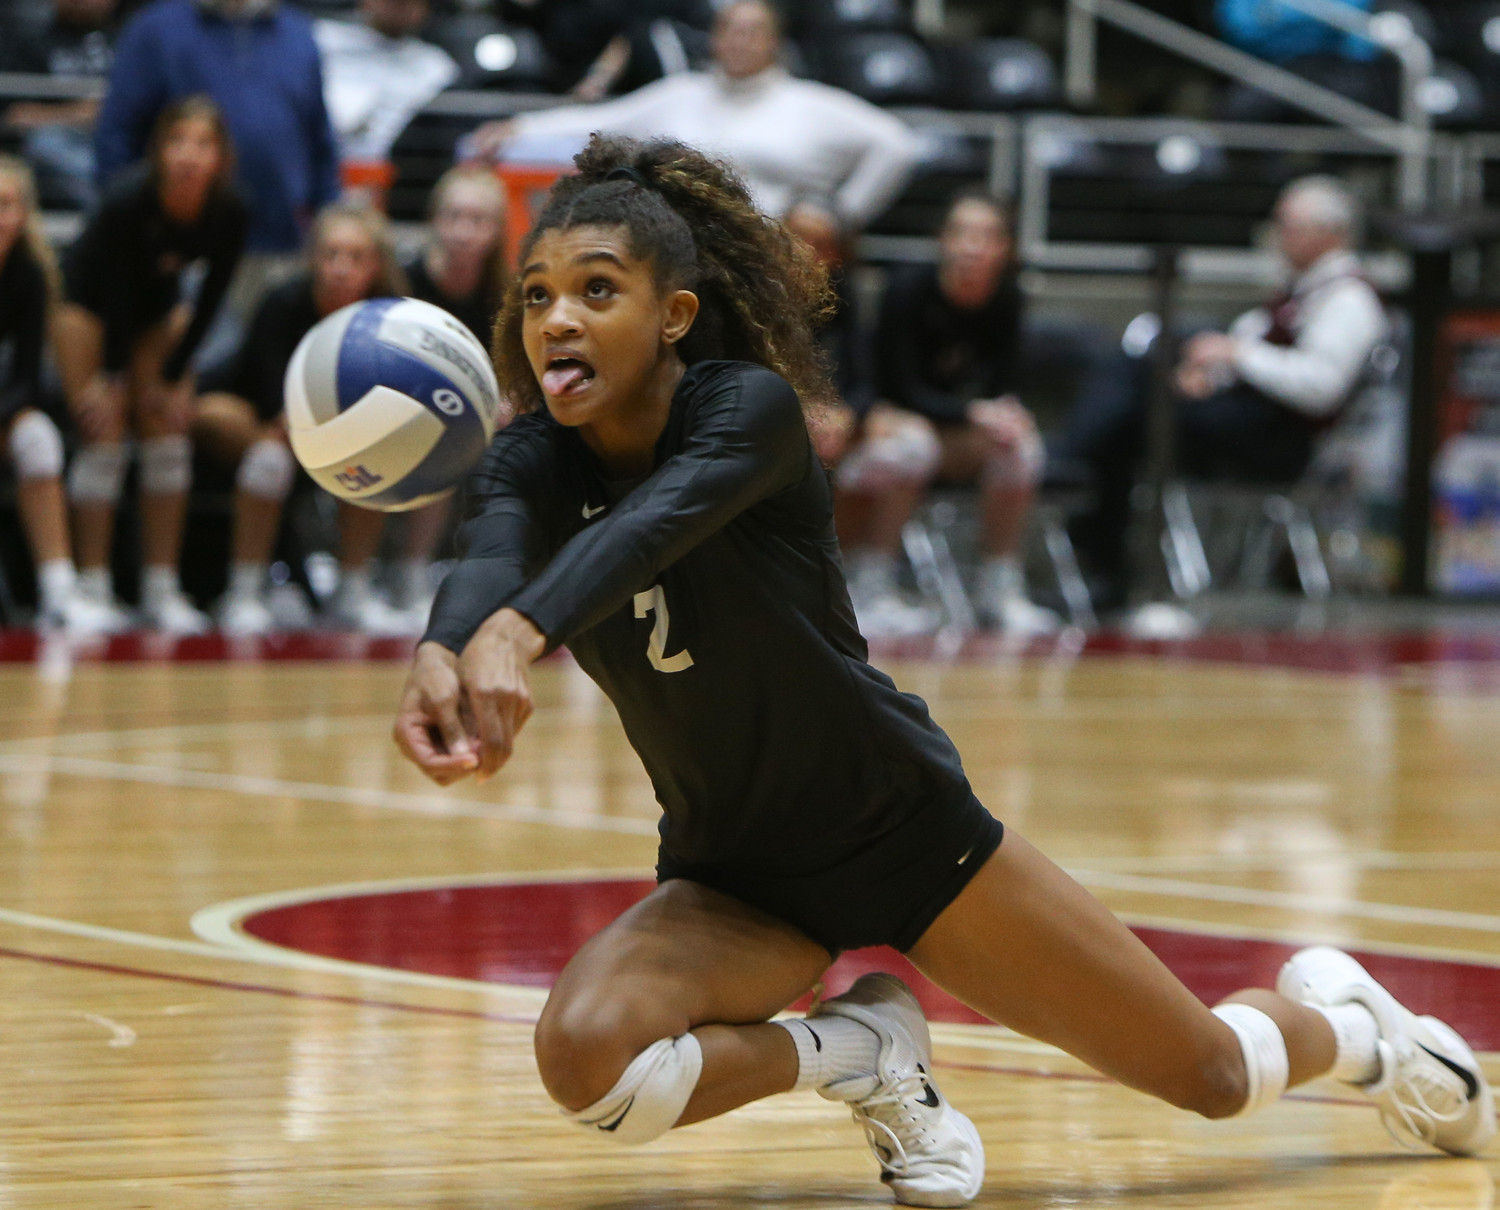 Rouse Raiders senior e'lan McCall (2) digs the ball during the Class 5A high school volleyball state final between Rouse High School and Prosper High School at Curtis Culwell Center in Garland, Texas, on November 18, 2017. Prosper won the match in five sets, (25-18, 21-25, 18-25, 25, 23, 16-14) to win the 5A state championship.